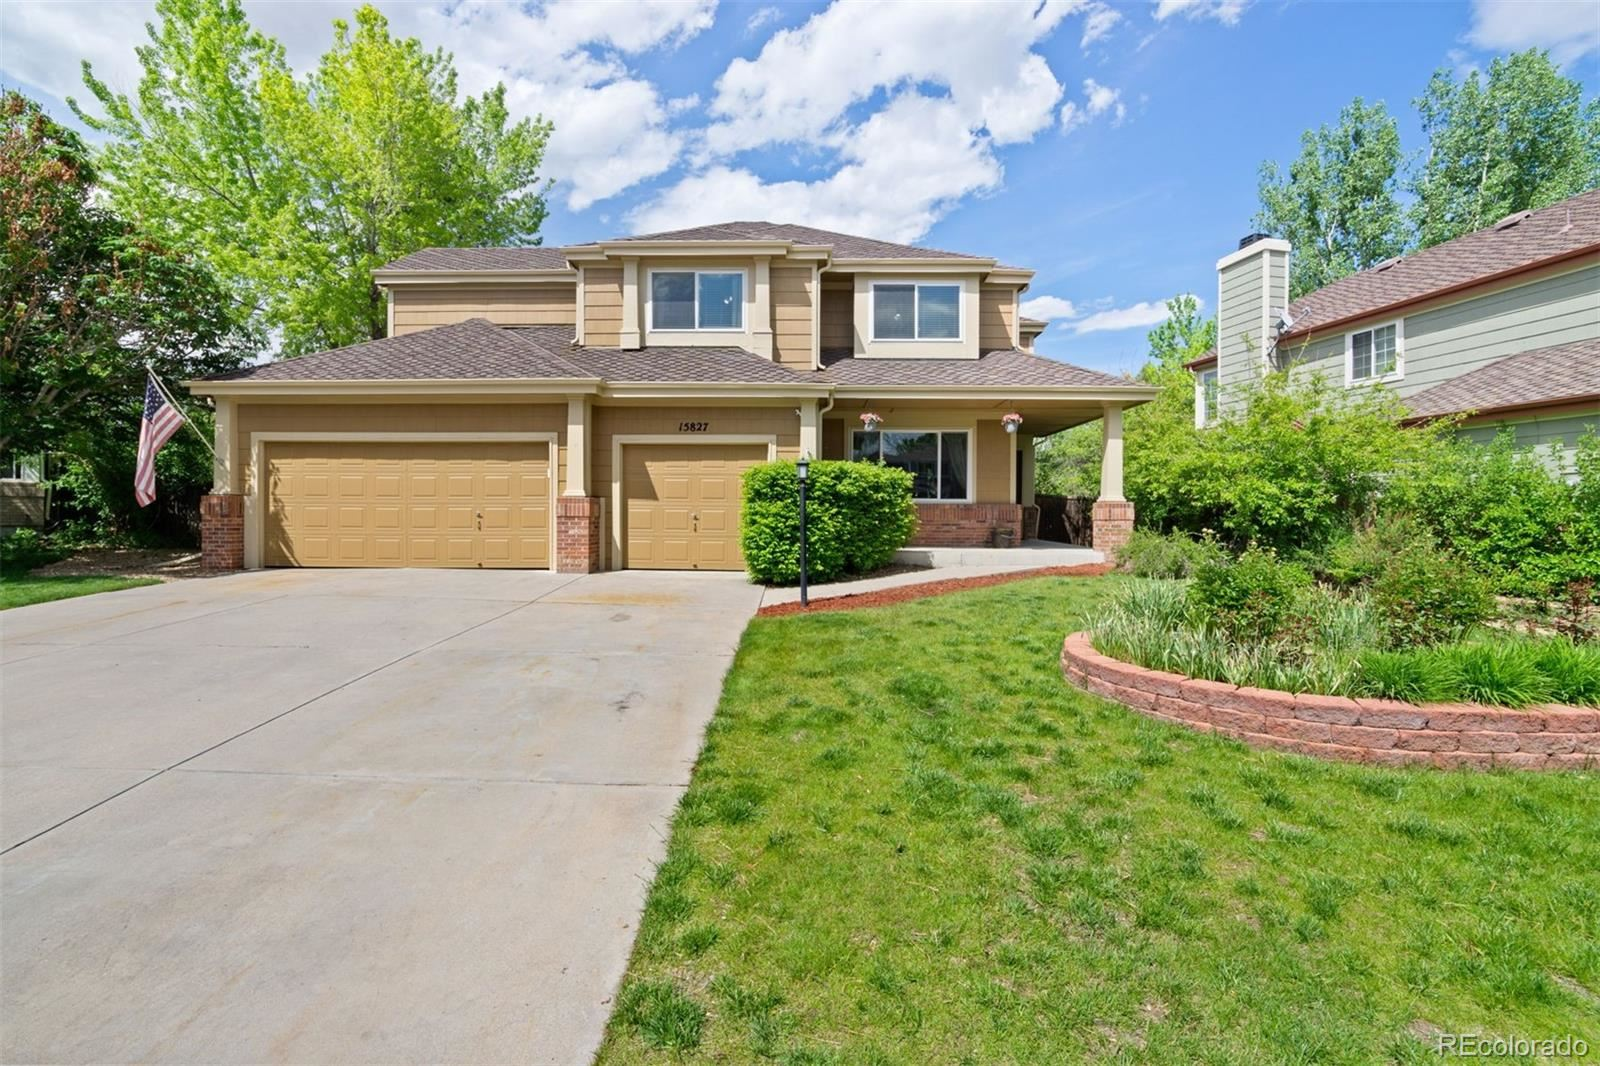 15827  Siena Terrace, Parker, CO 80134 - #: 1749576